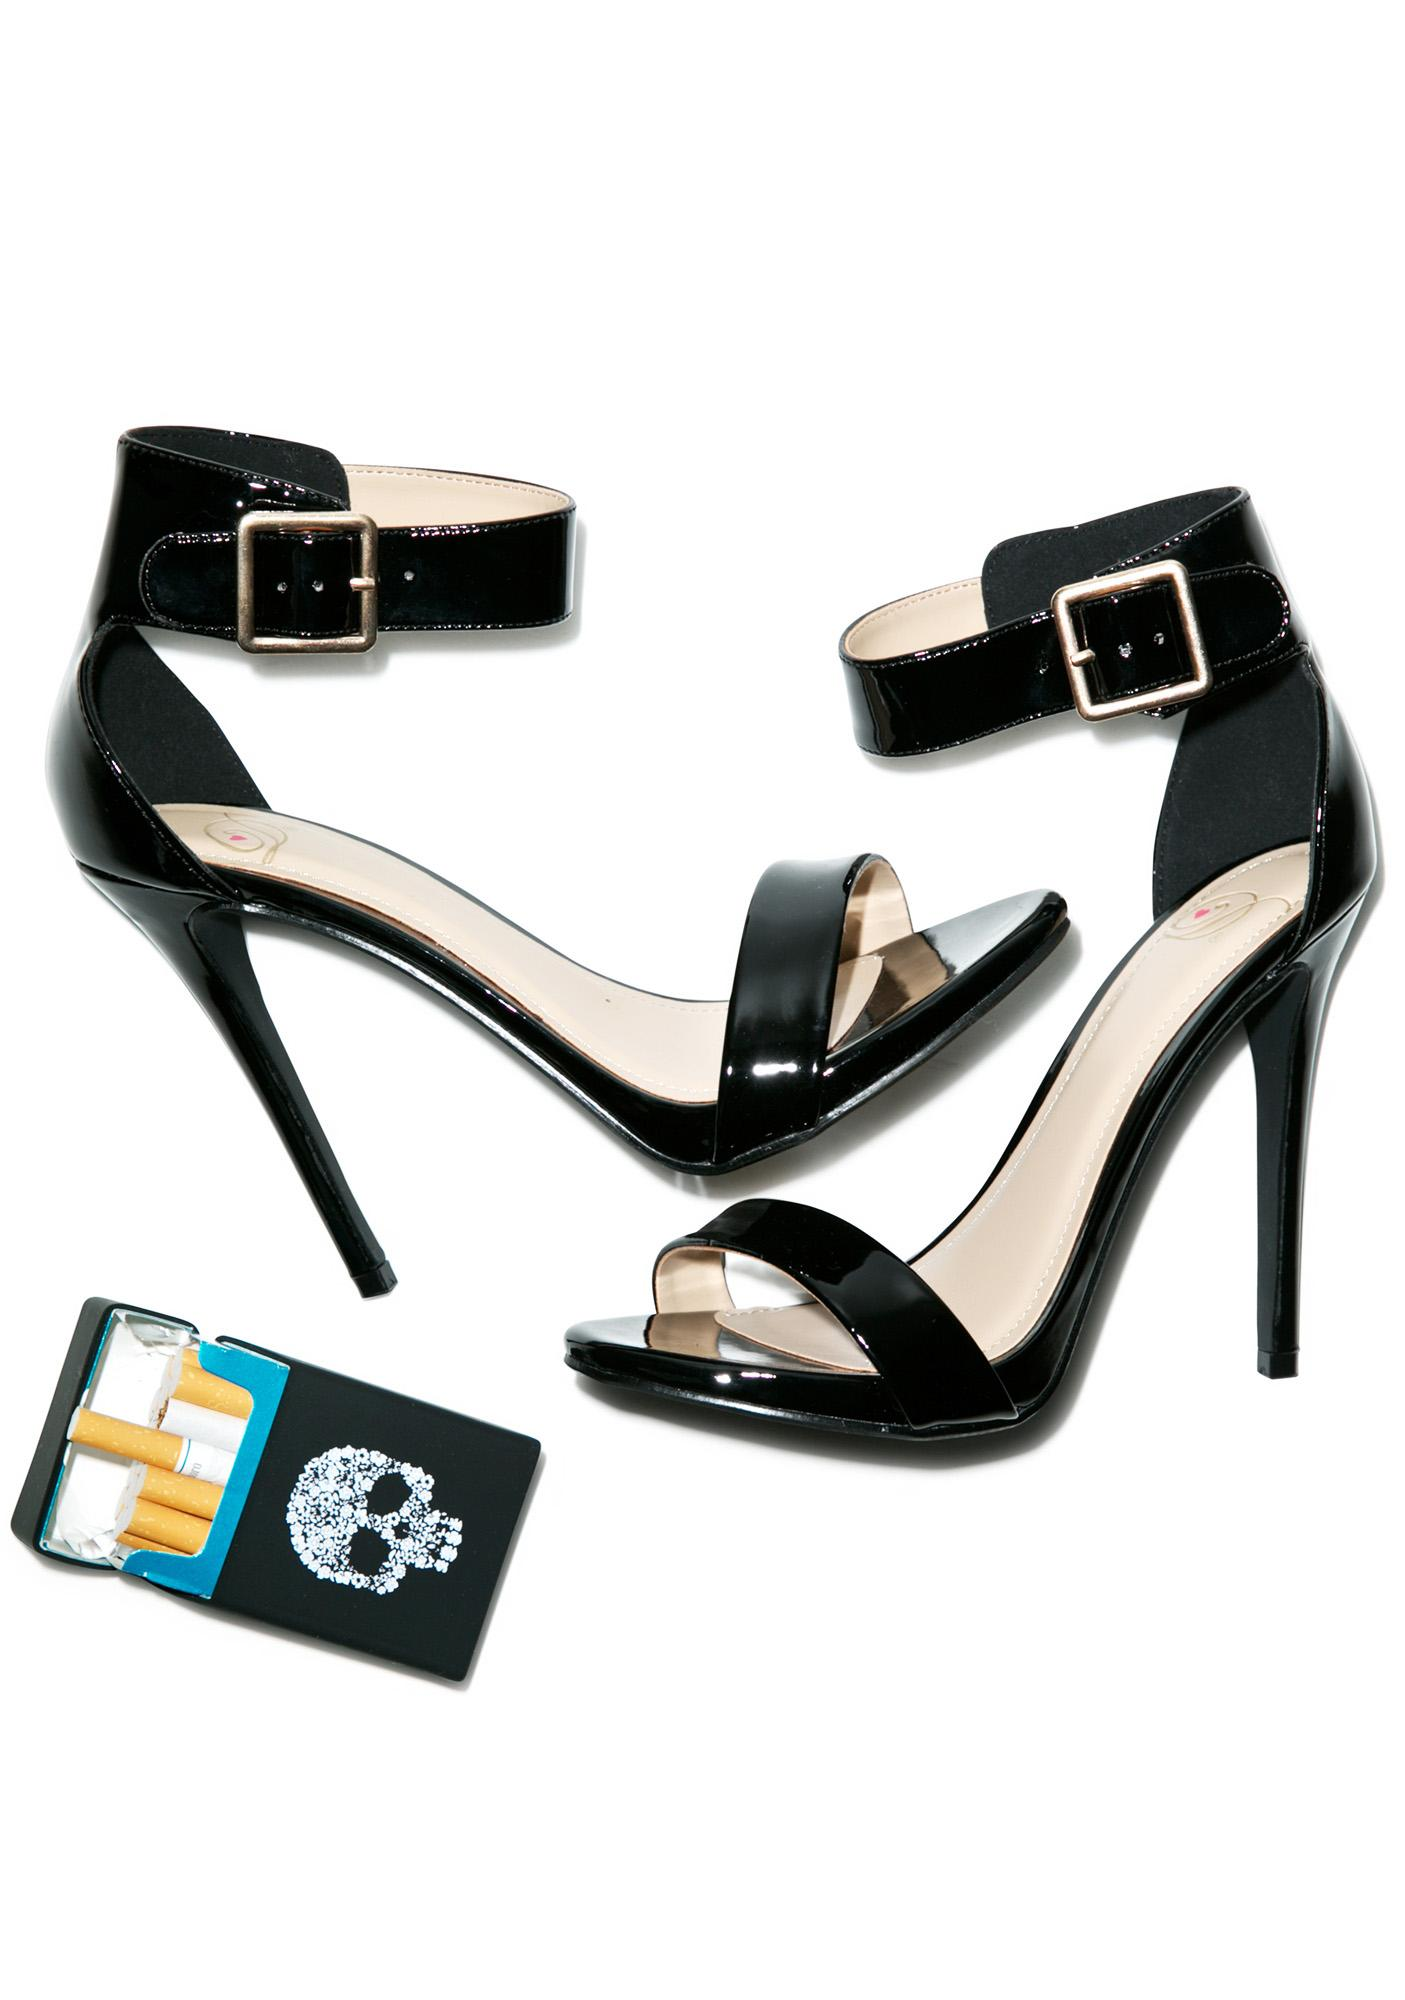 Take Me Home Tonight Canter Heels